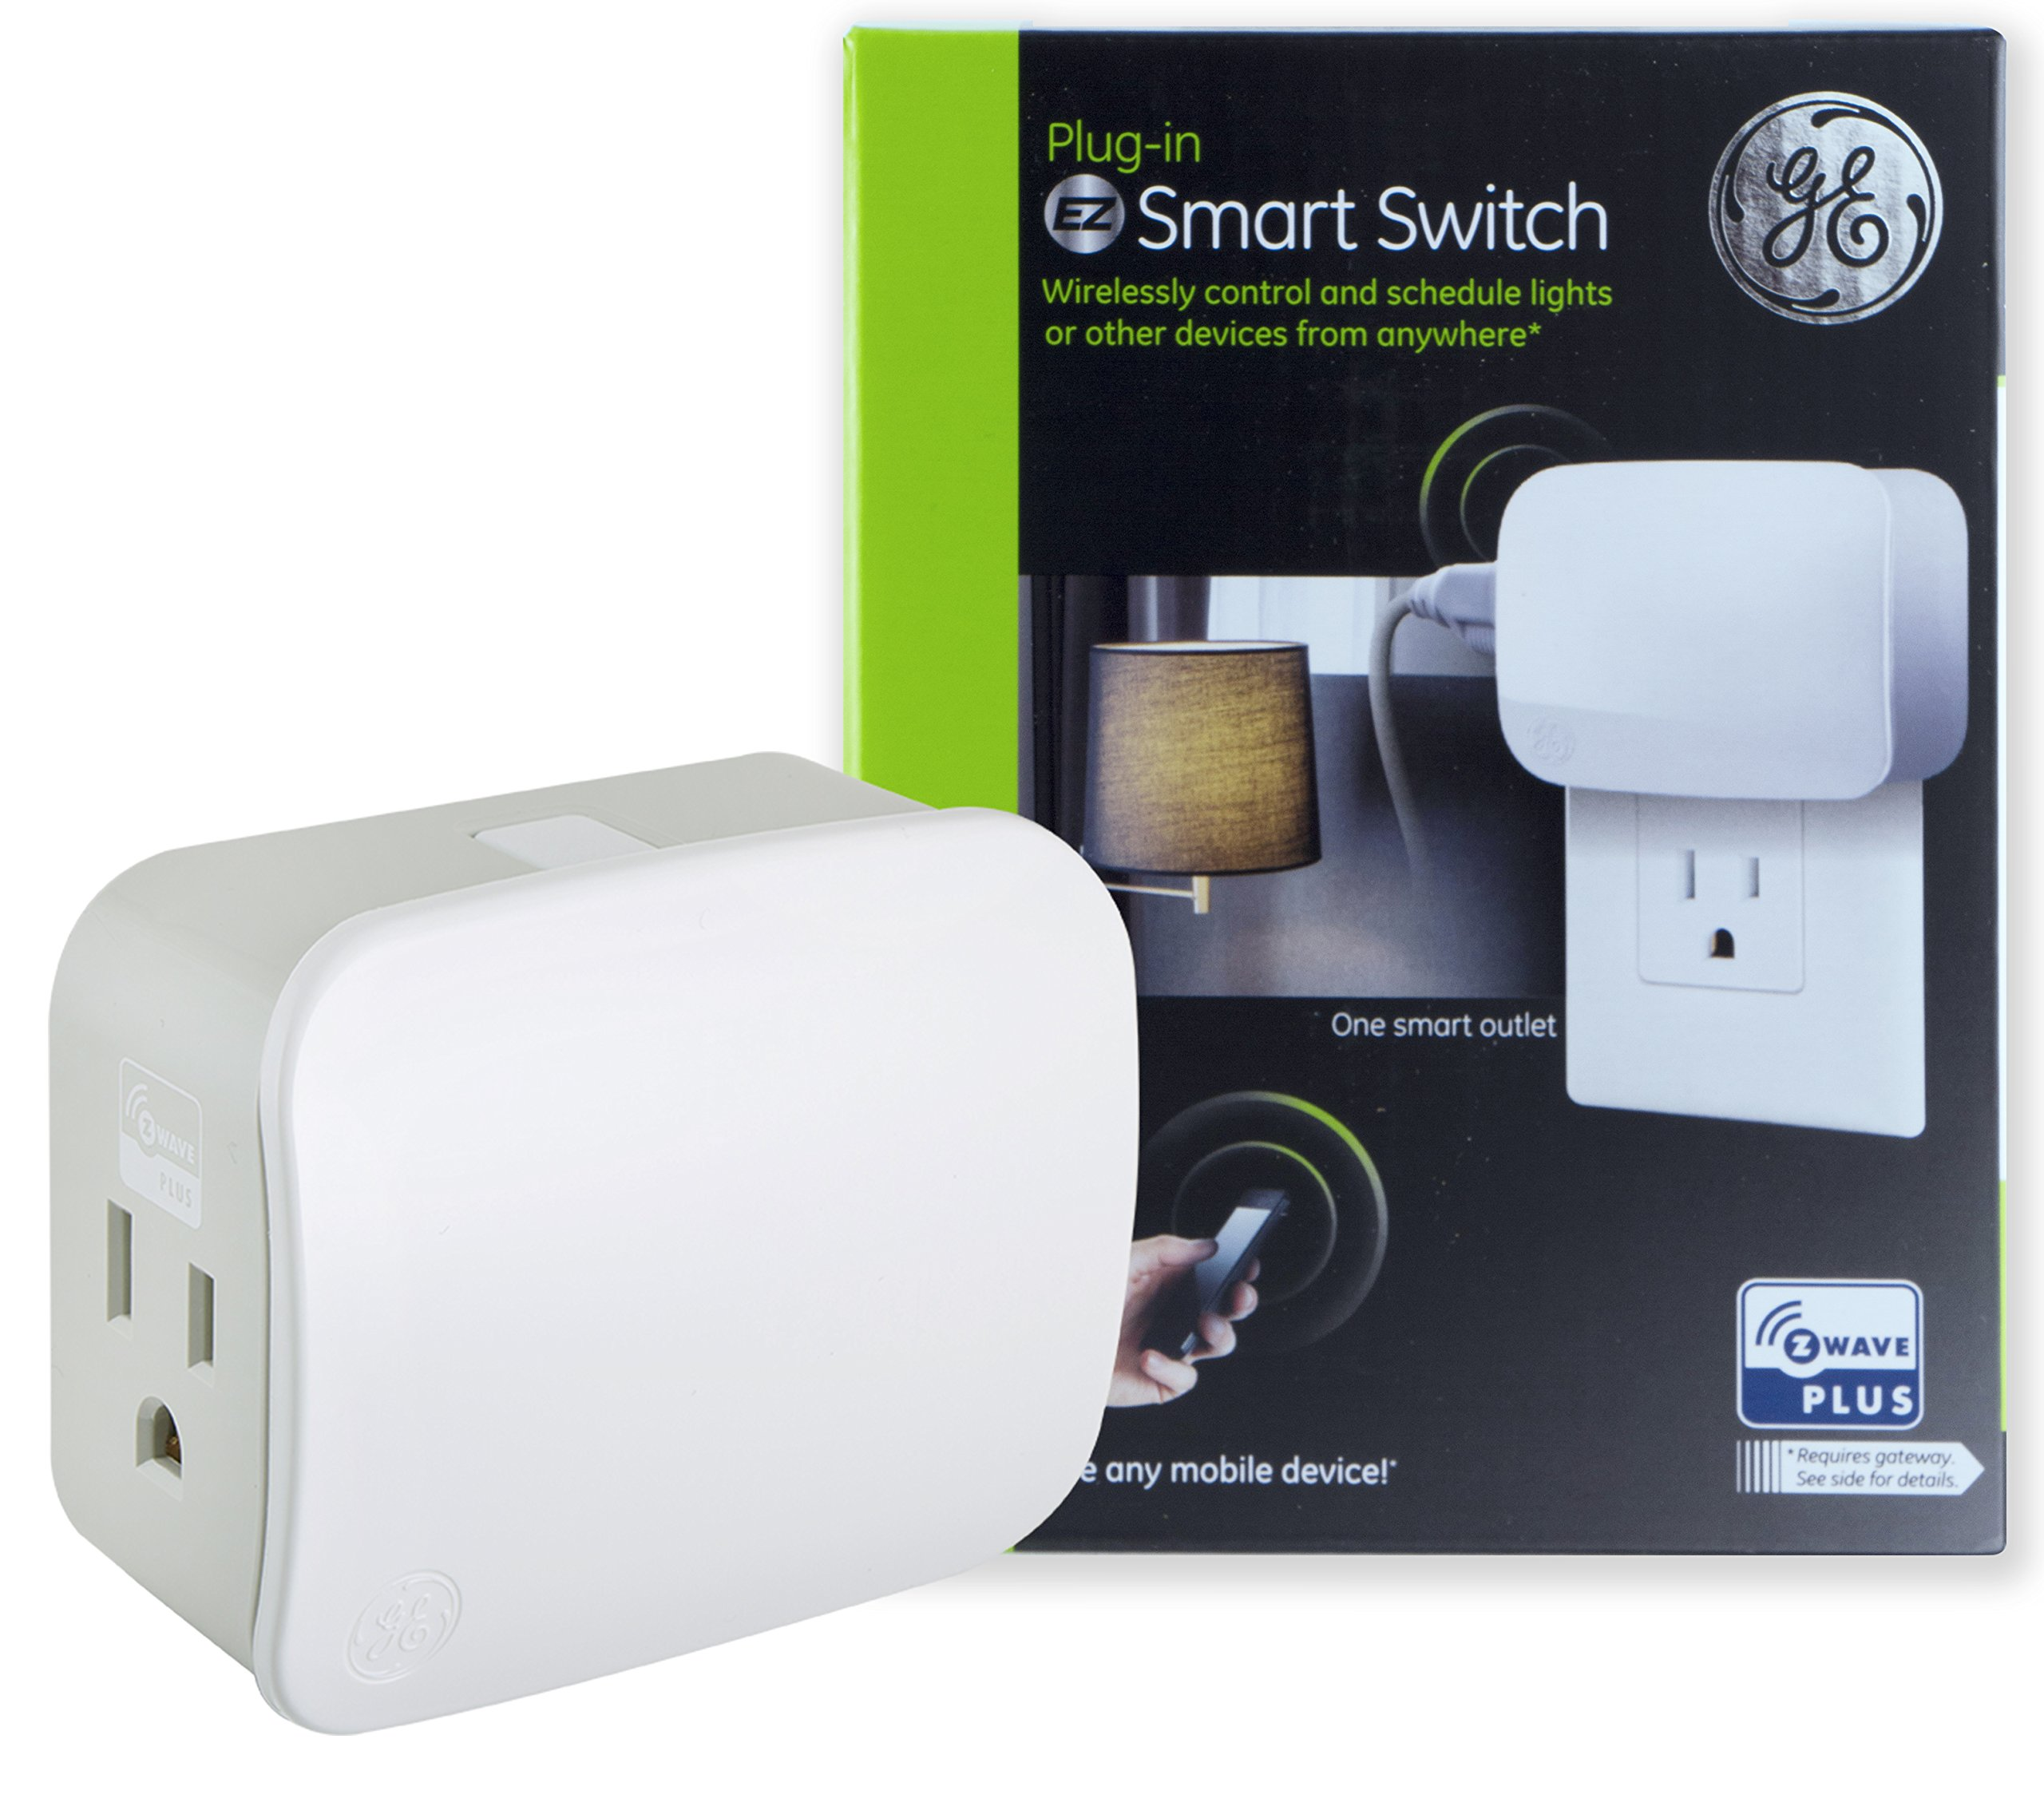 GE Z-Wave Plus On/Off Plug-In Smart Switch, 1 Grounded Outlet, Control Lighting & Appliances, Built-in Repeater & Range Extender, Zwave Hub Required- Works with SmartThings Wink and Alexa, 28169